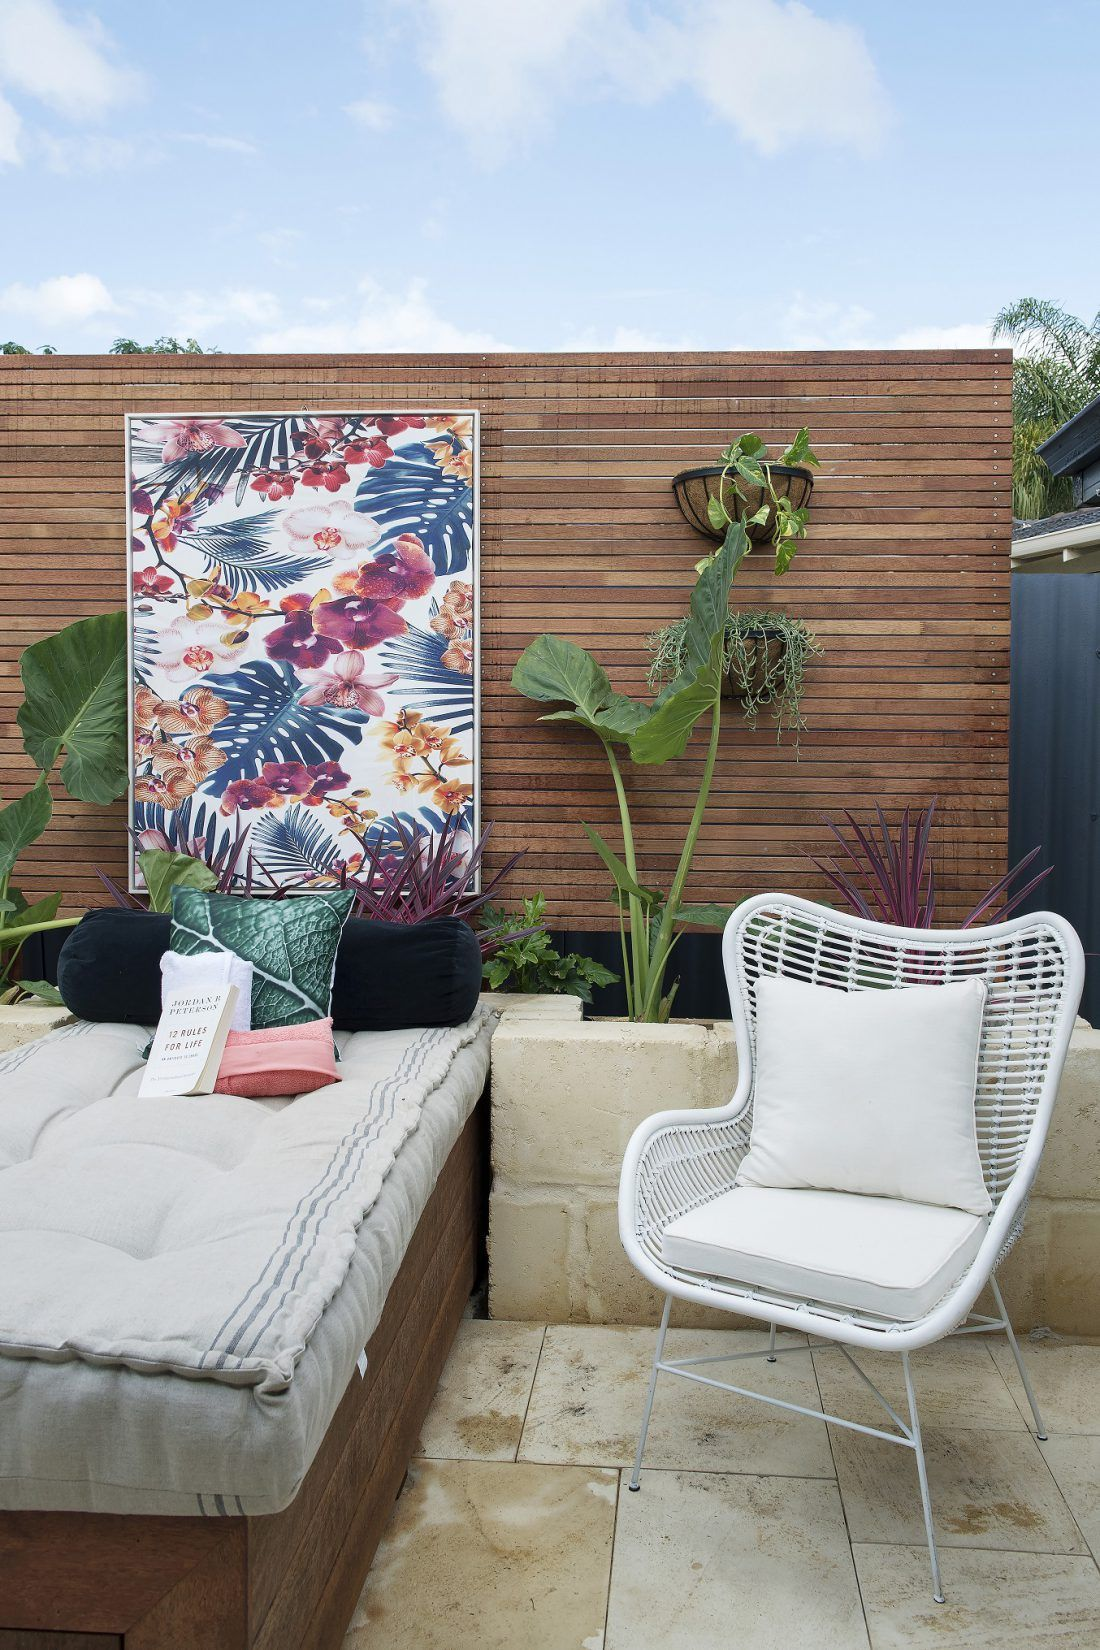 House Rules 2018: Backyard Reveals Part 2 (With images ...